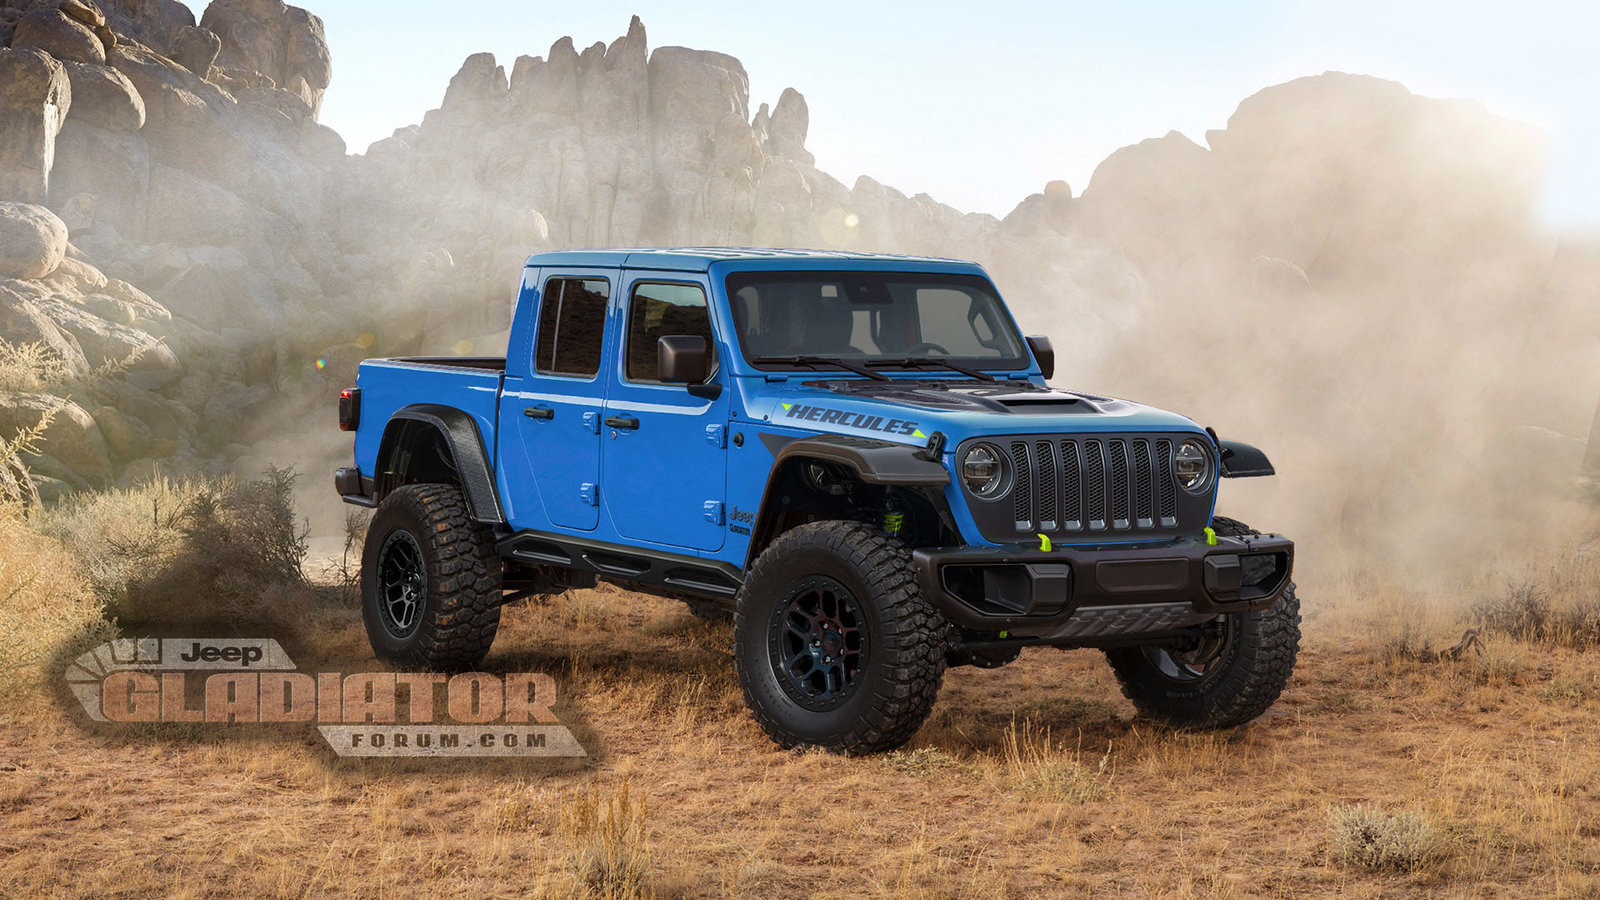 Jeep Gladiator Hercules renderings (4)